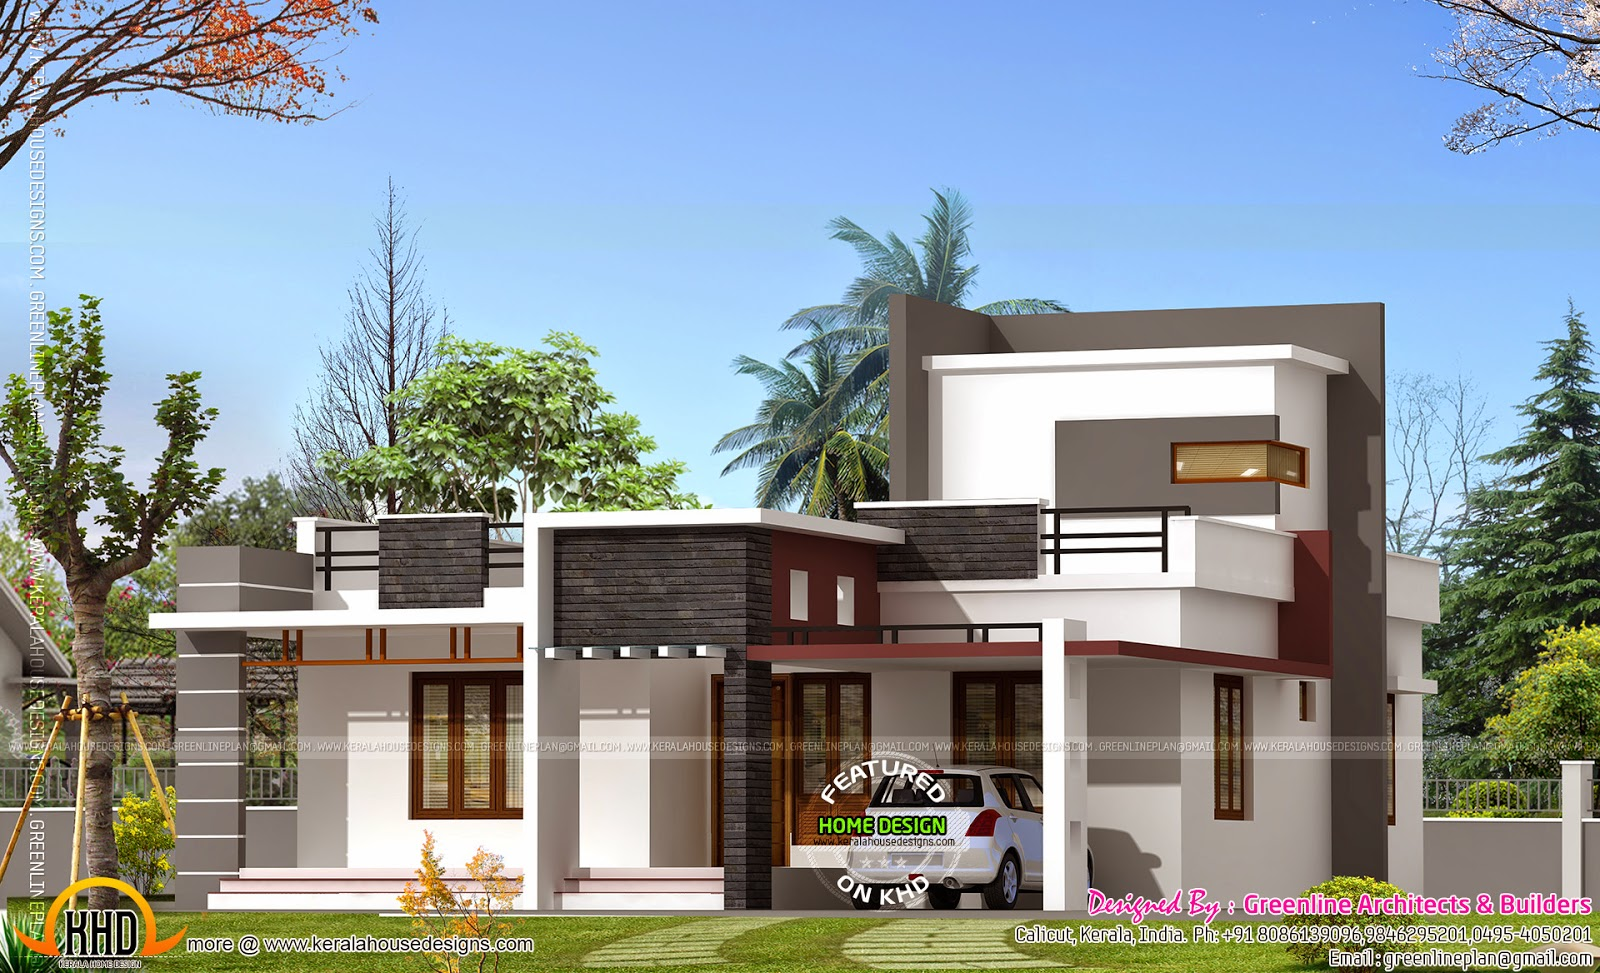 1000 Square Feet House Kerala Home Design And Floor Plans: 1000 square feet house plan india